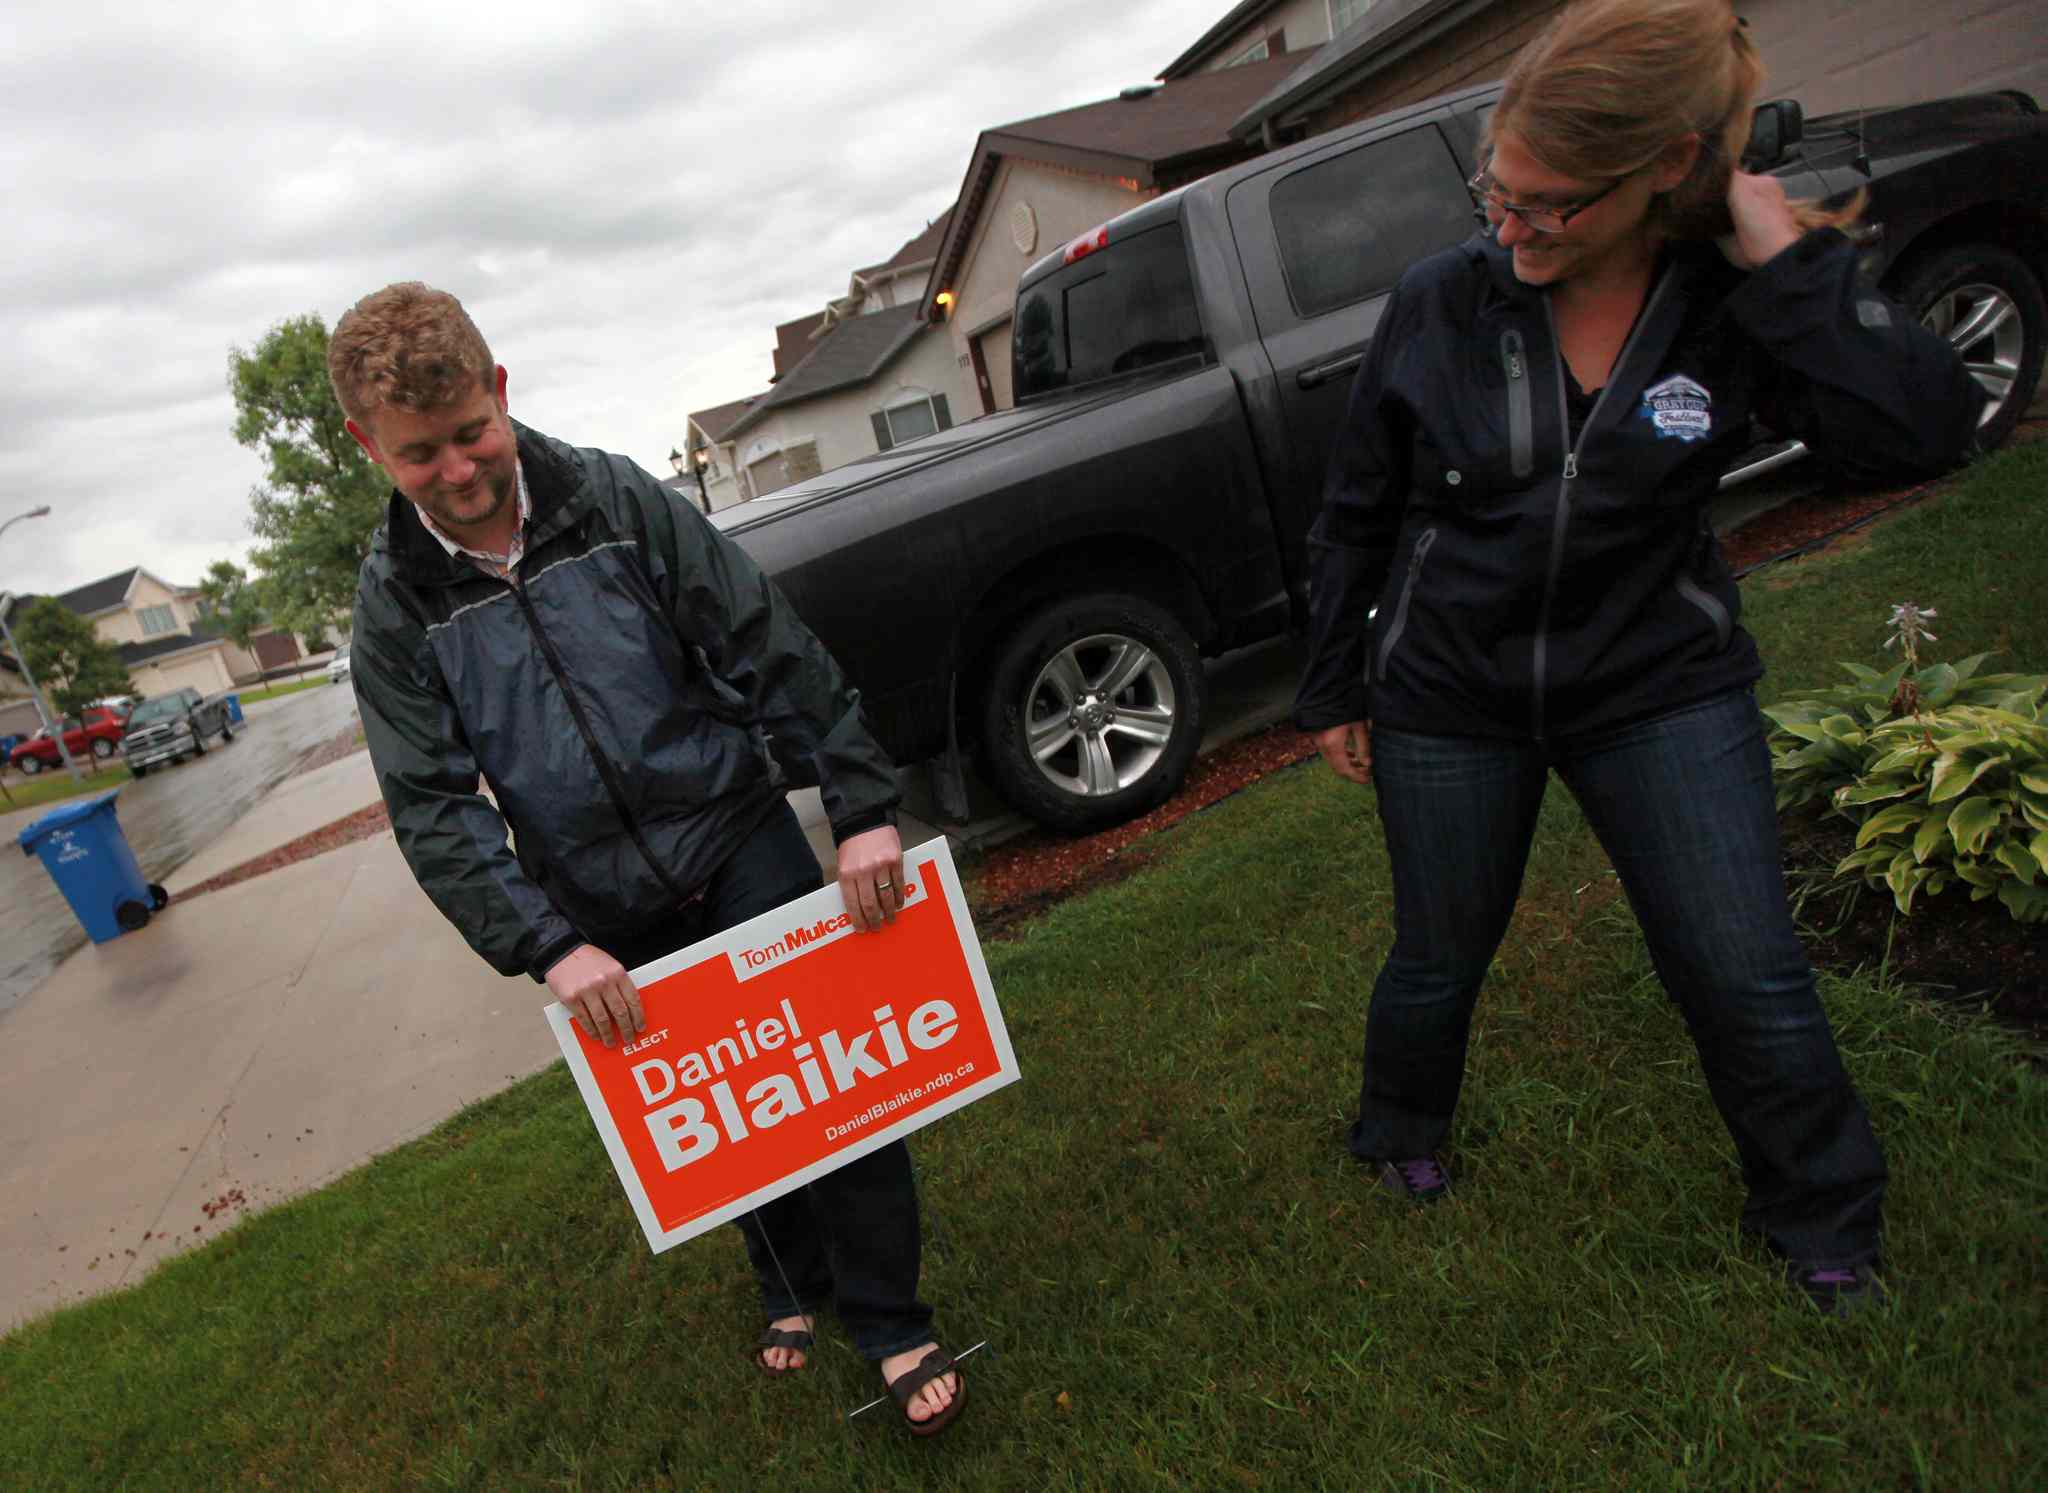 Daniel Blaikie pushes a campaign sign into a transcona lawn Wednesday evening assisted by Breigh Kusmack. The sign at 171 Chadwick Cr. was the first in the area. (Phil Hossack / Winnipeg Free Press)